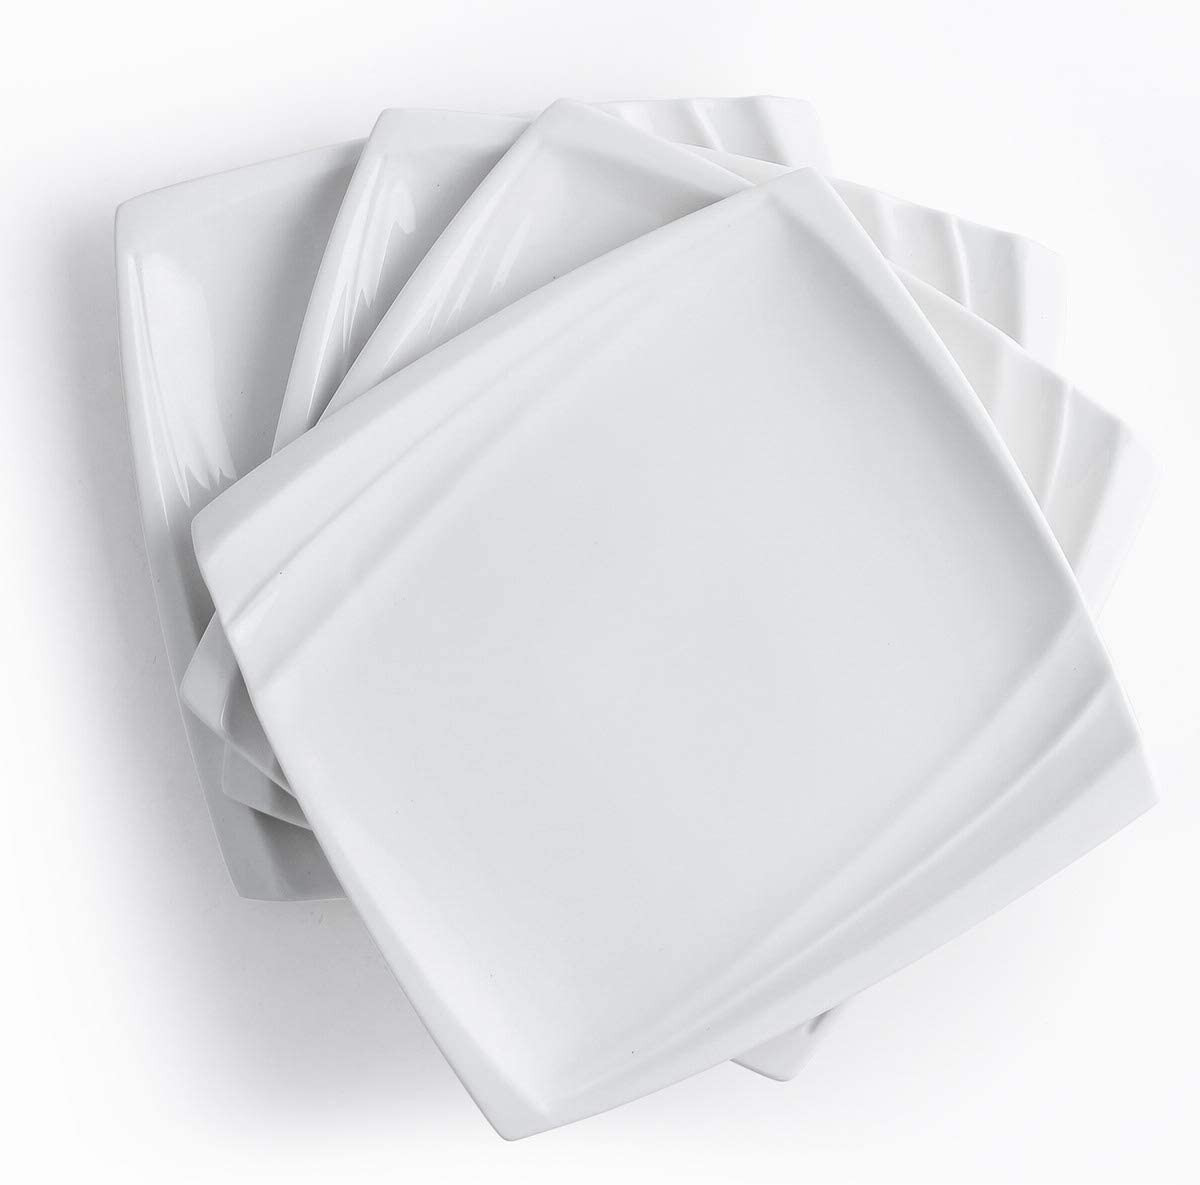 10 Inch Square Dinner Plates White Set of 4 Modern Lunch Serving Plate Xufeng (Wave Design)